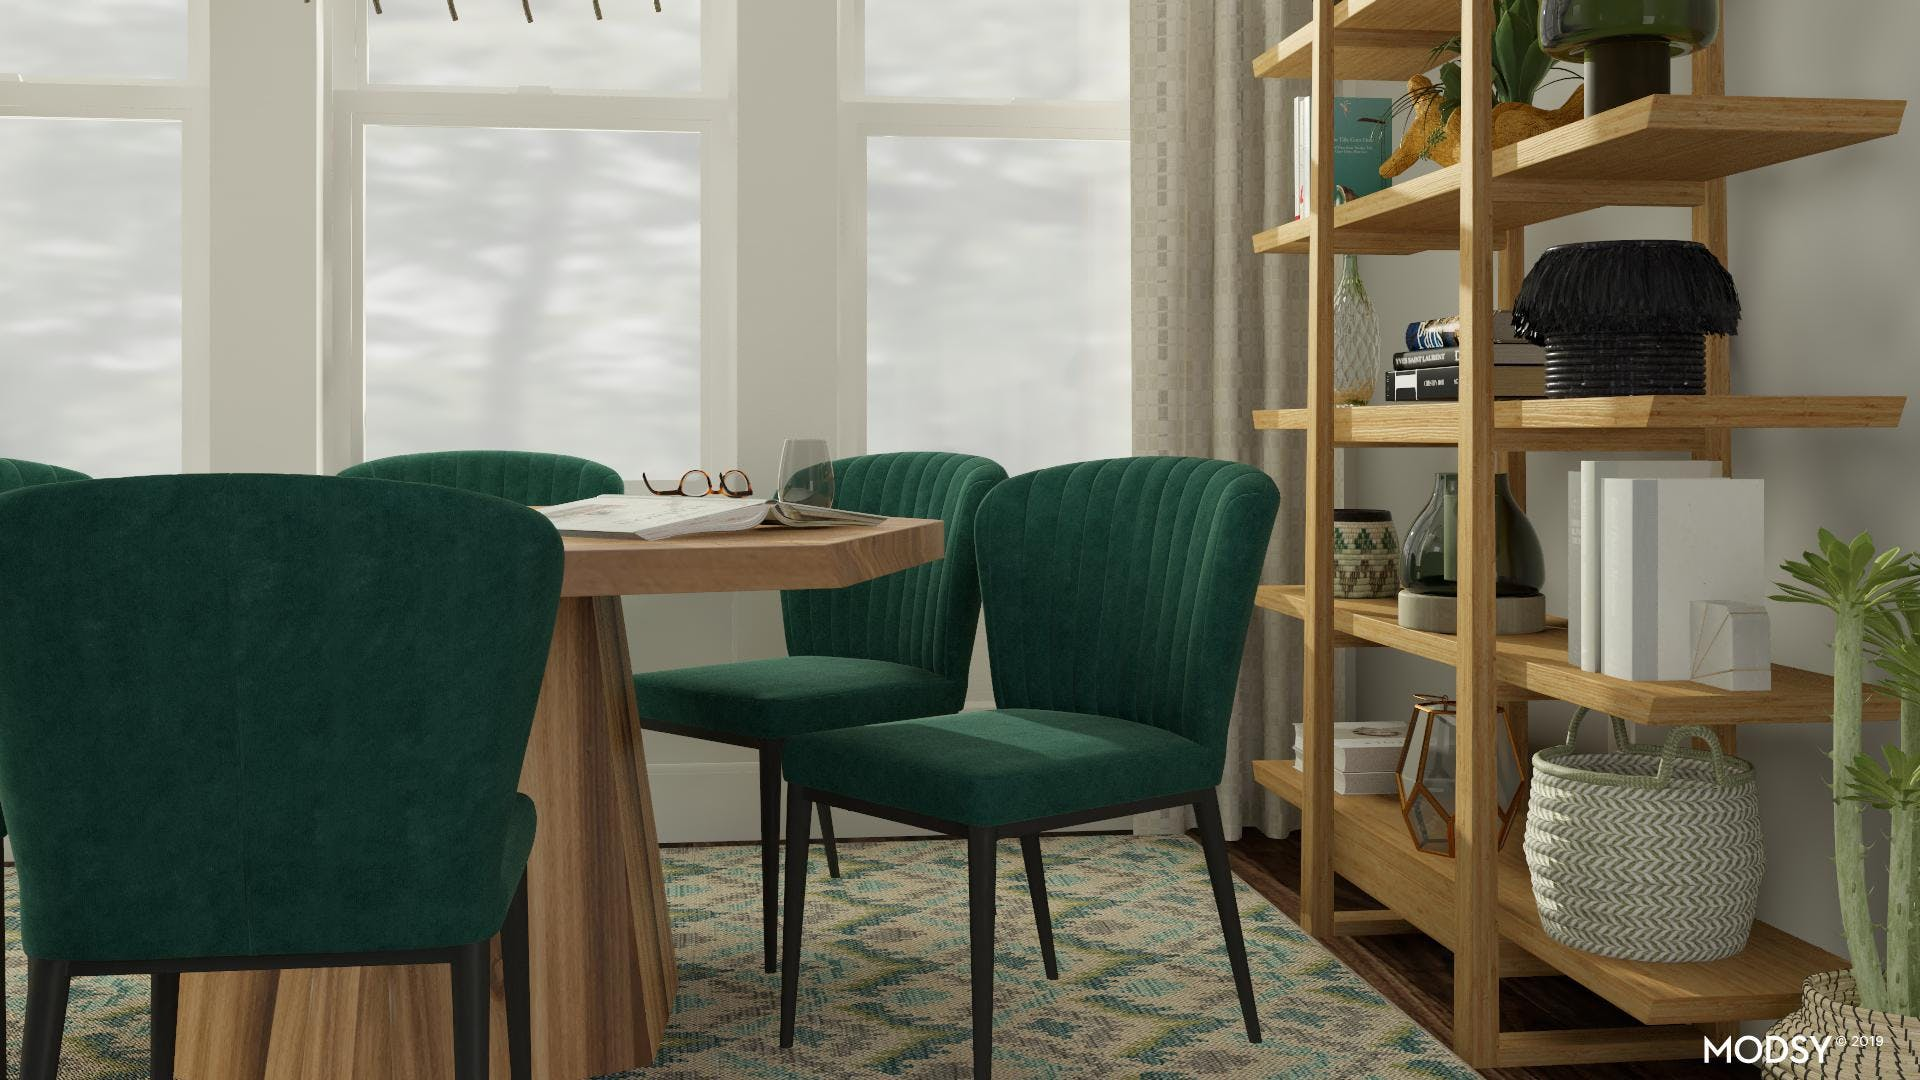 Mid-Century Modern Dining Room Styled With Greens